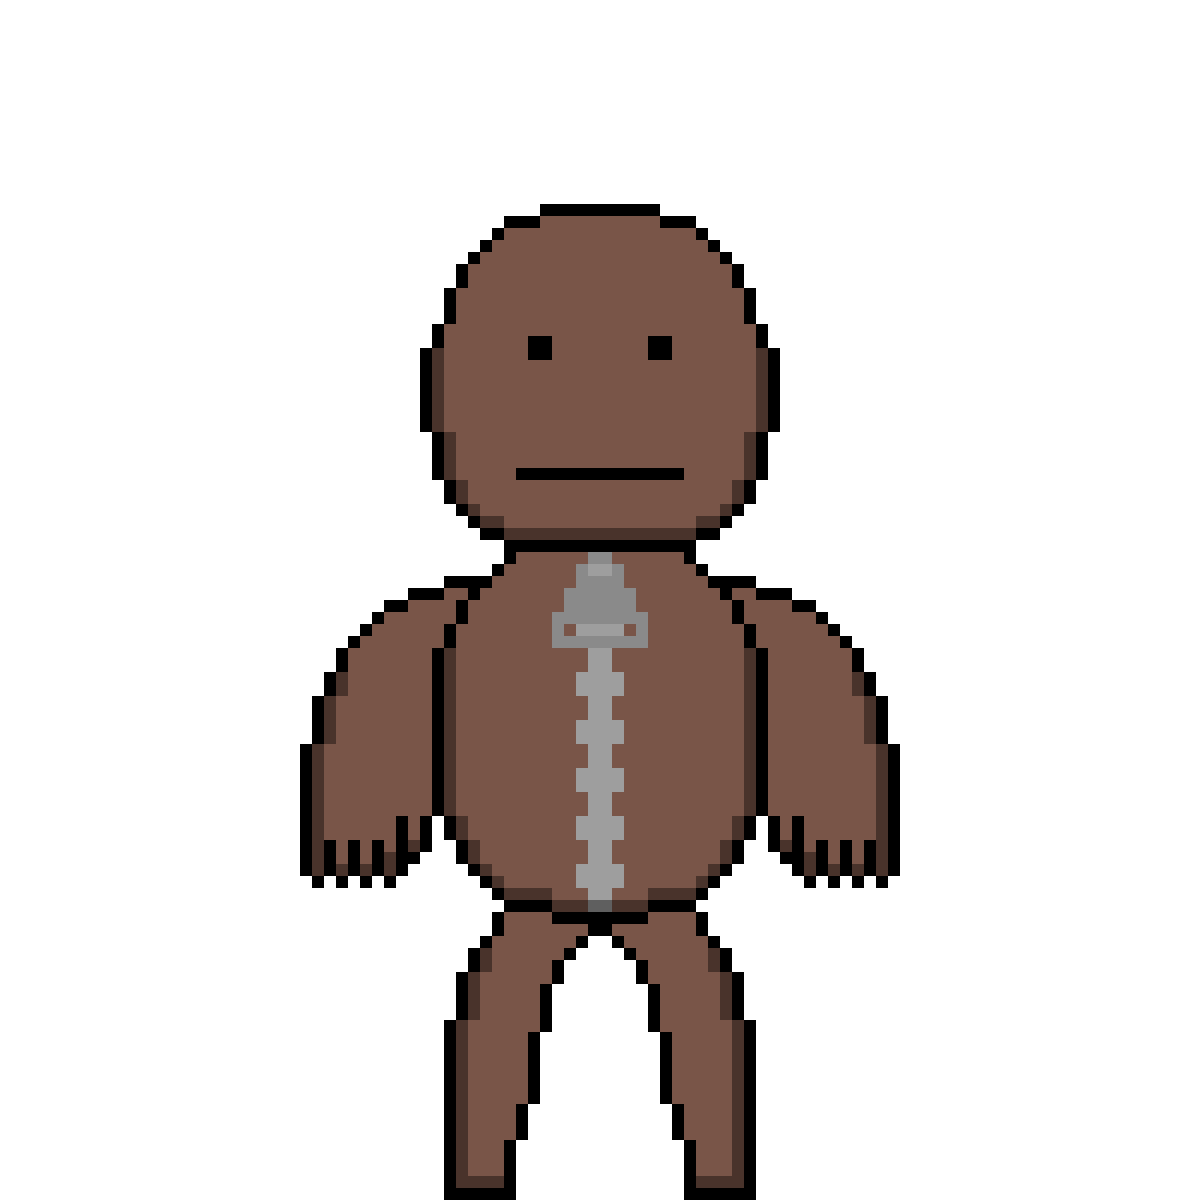 Pixilart lbp by anonymous. Sackboy drawing svg transparent download